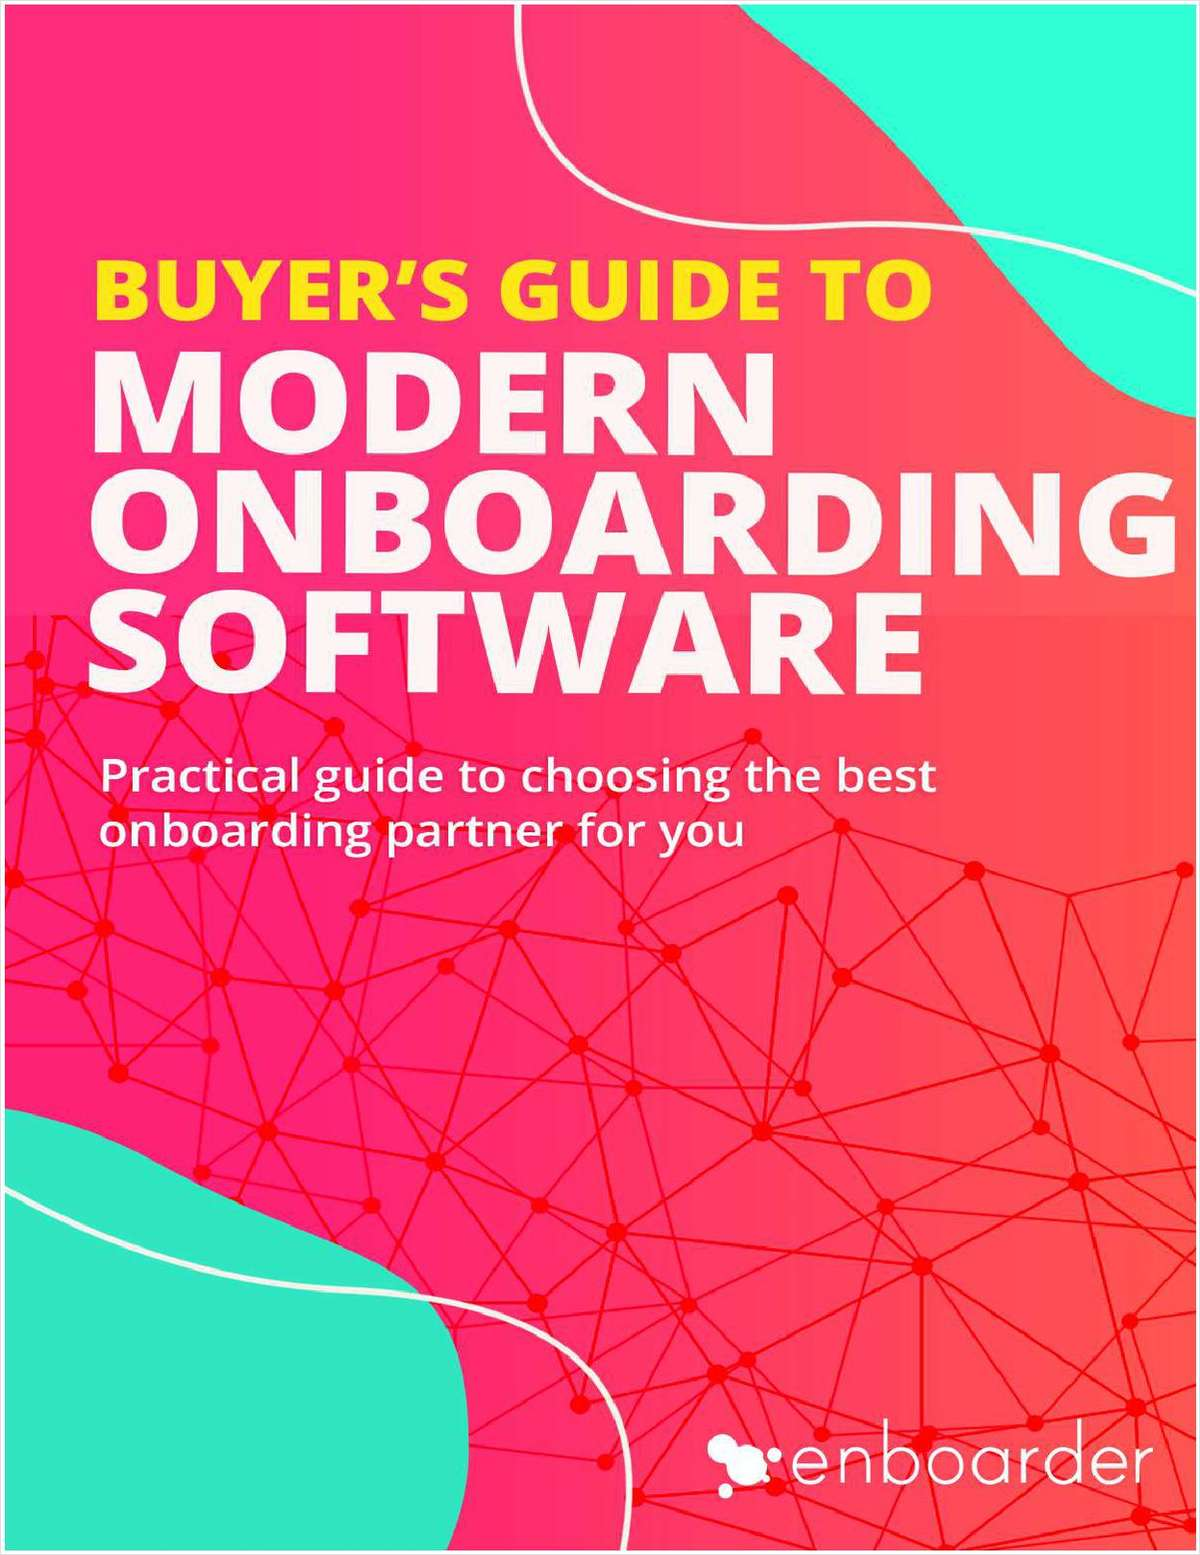 Buyer's Guide to Modern Onboarding Software